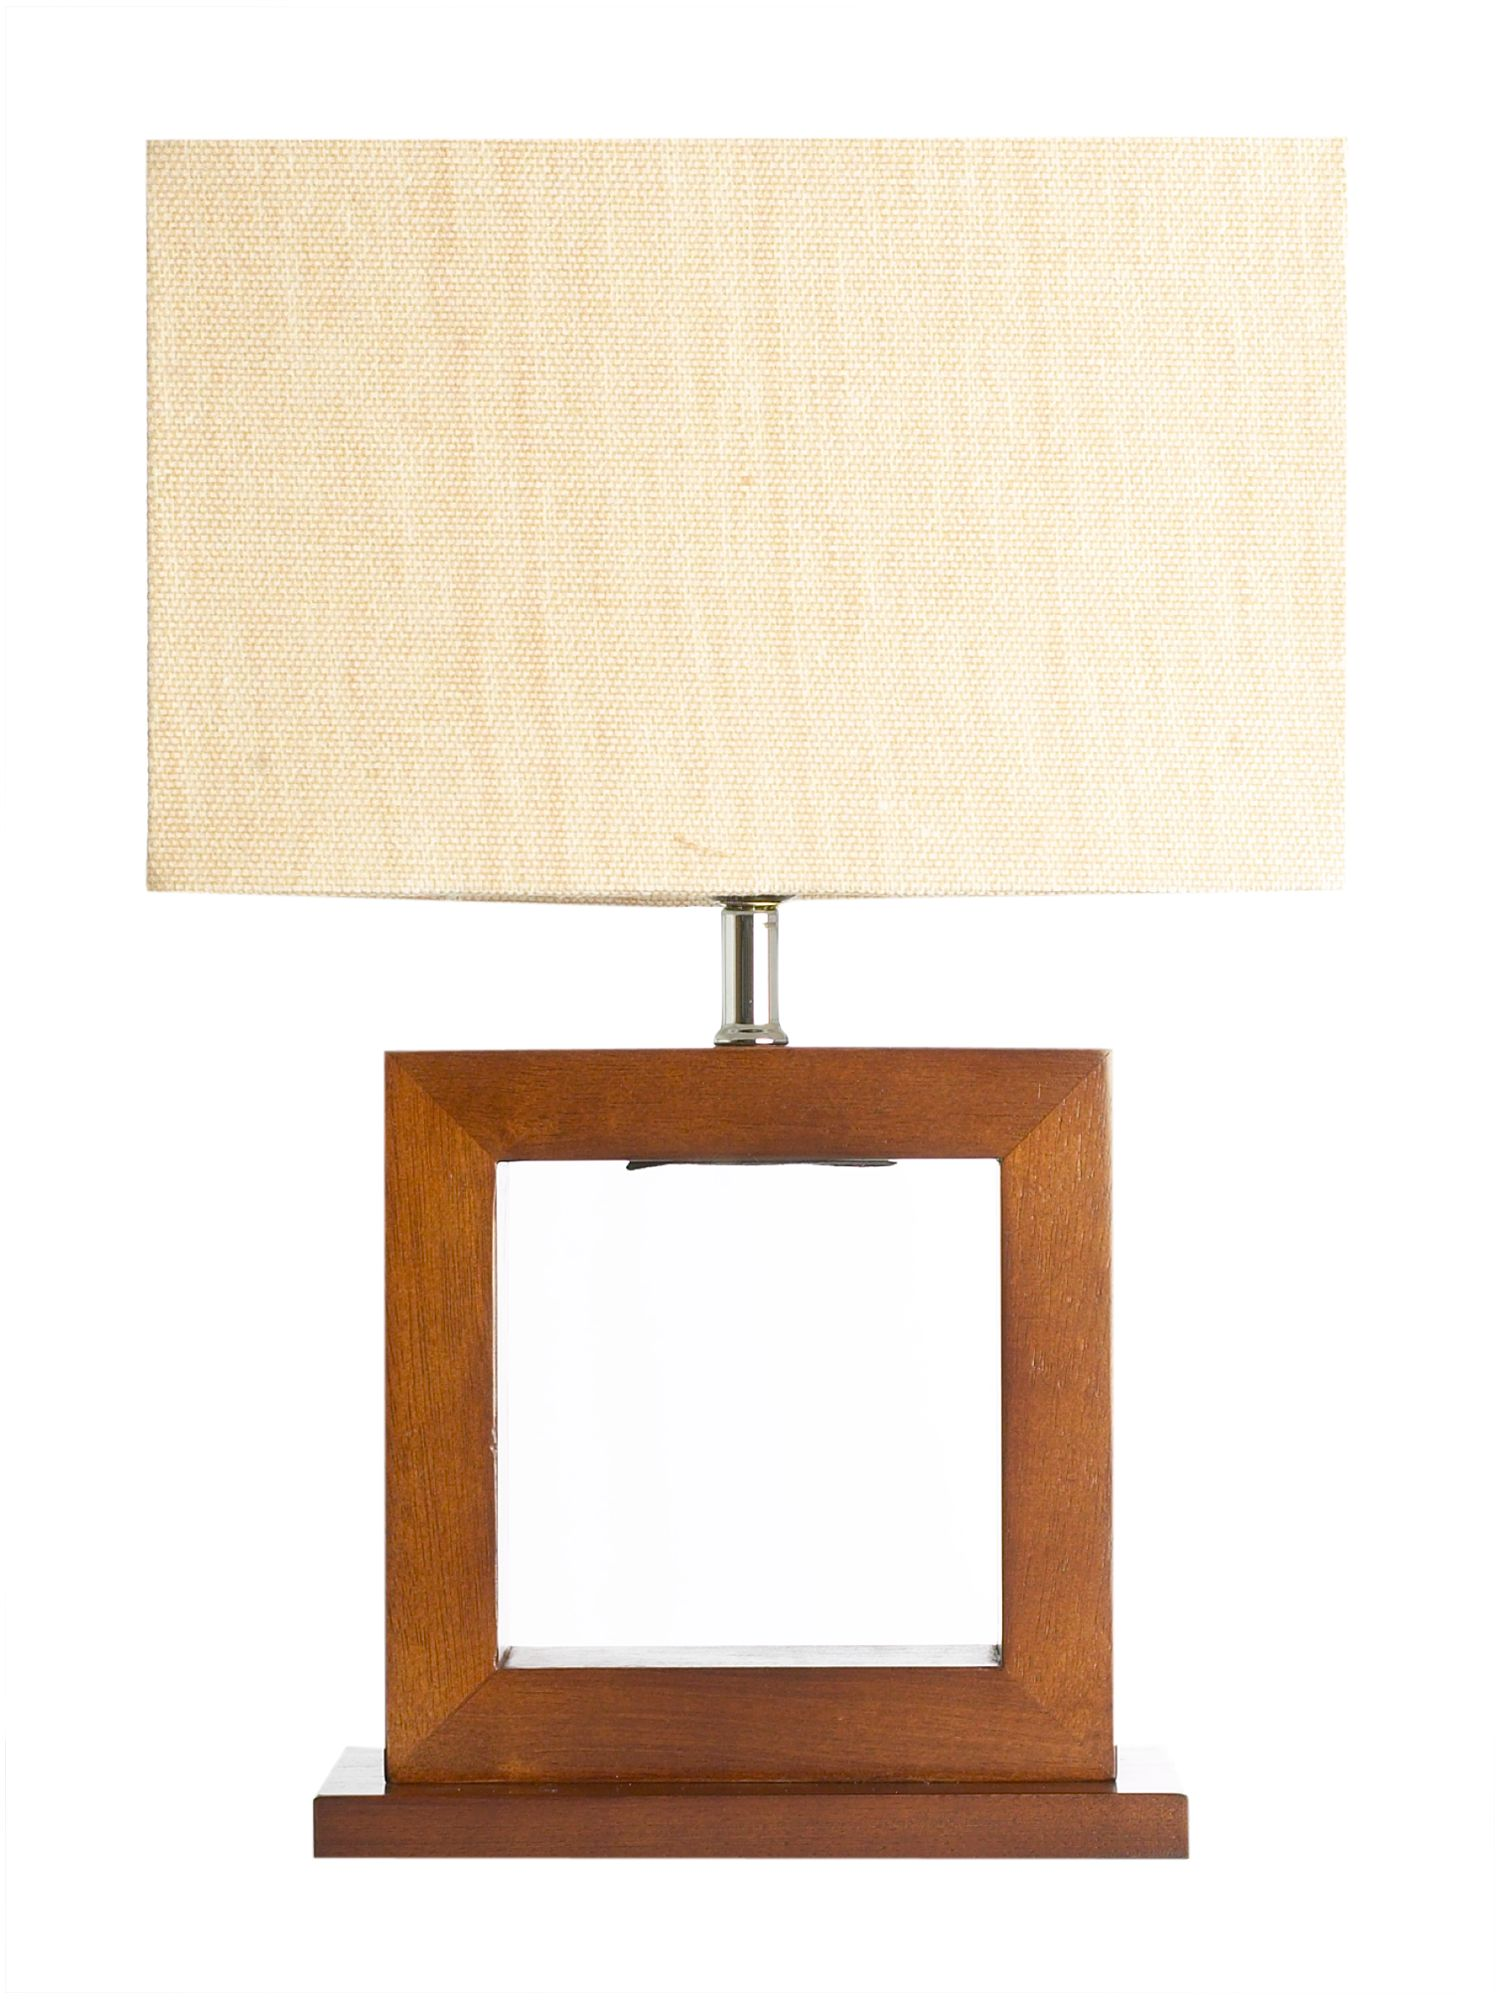 Quad table lamp